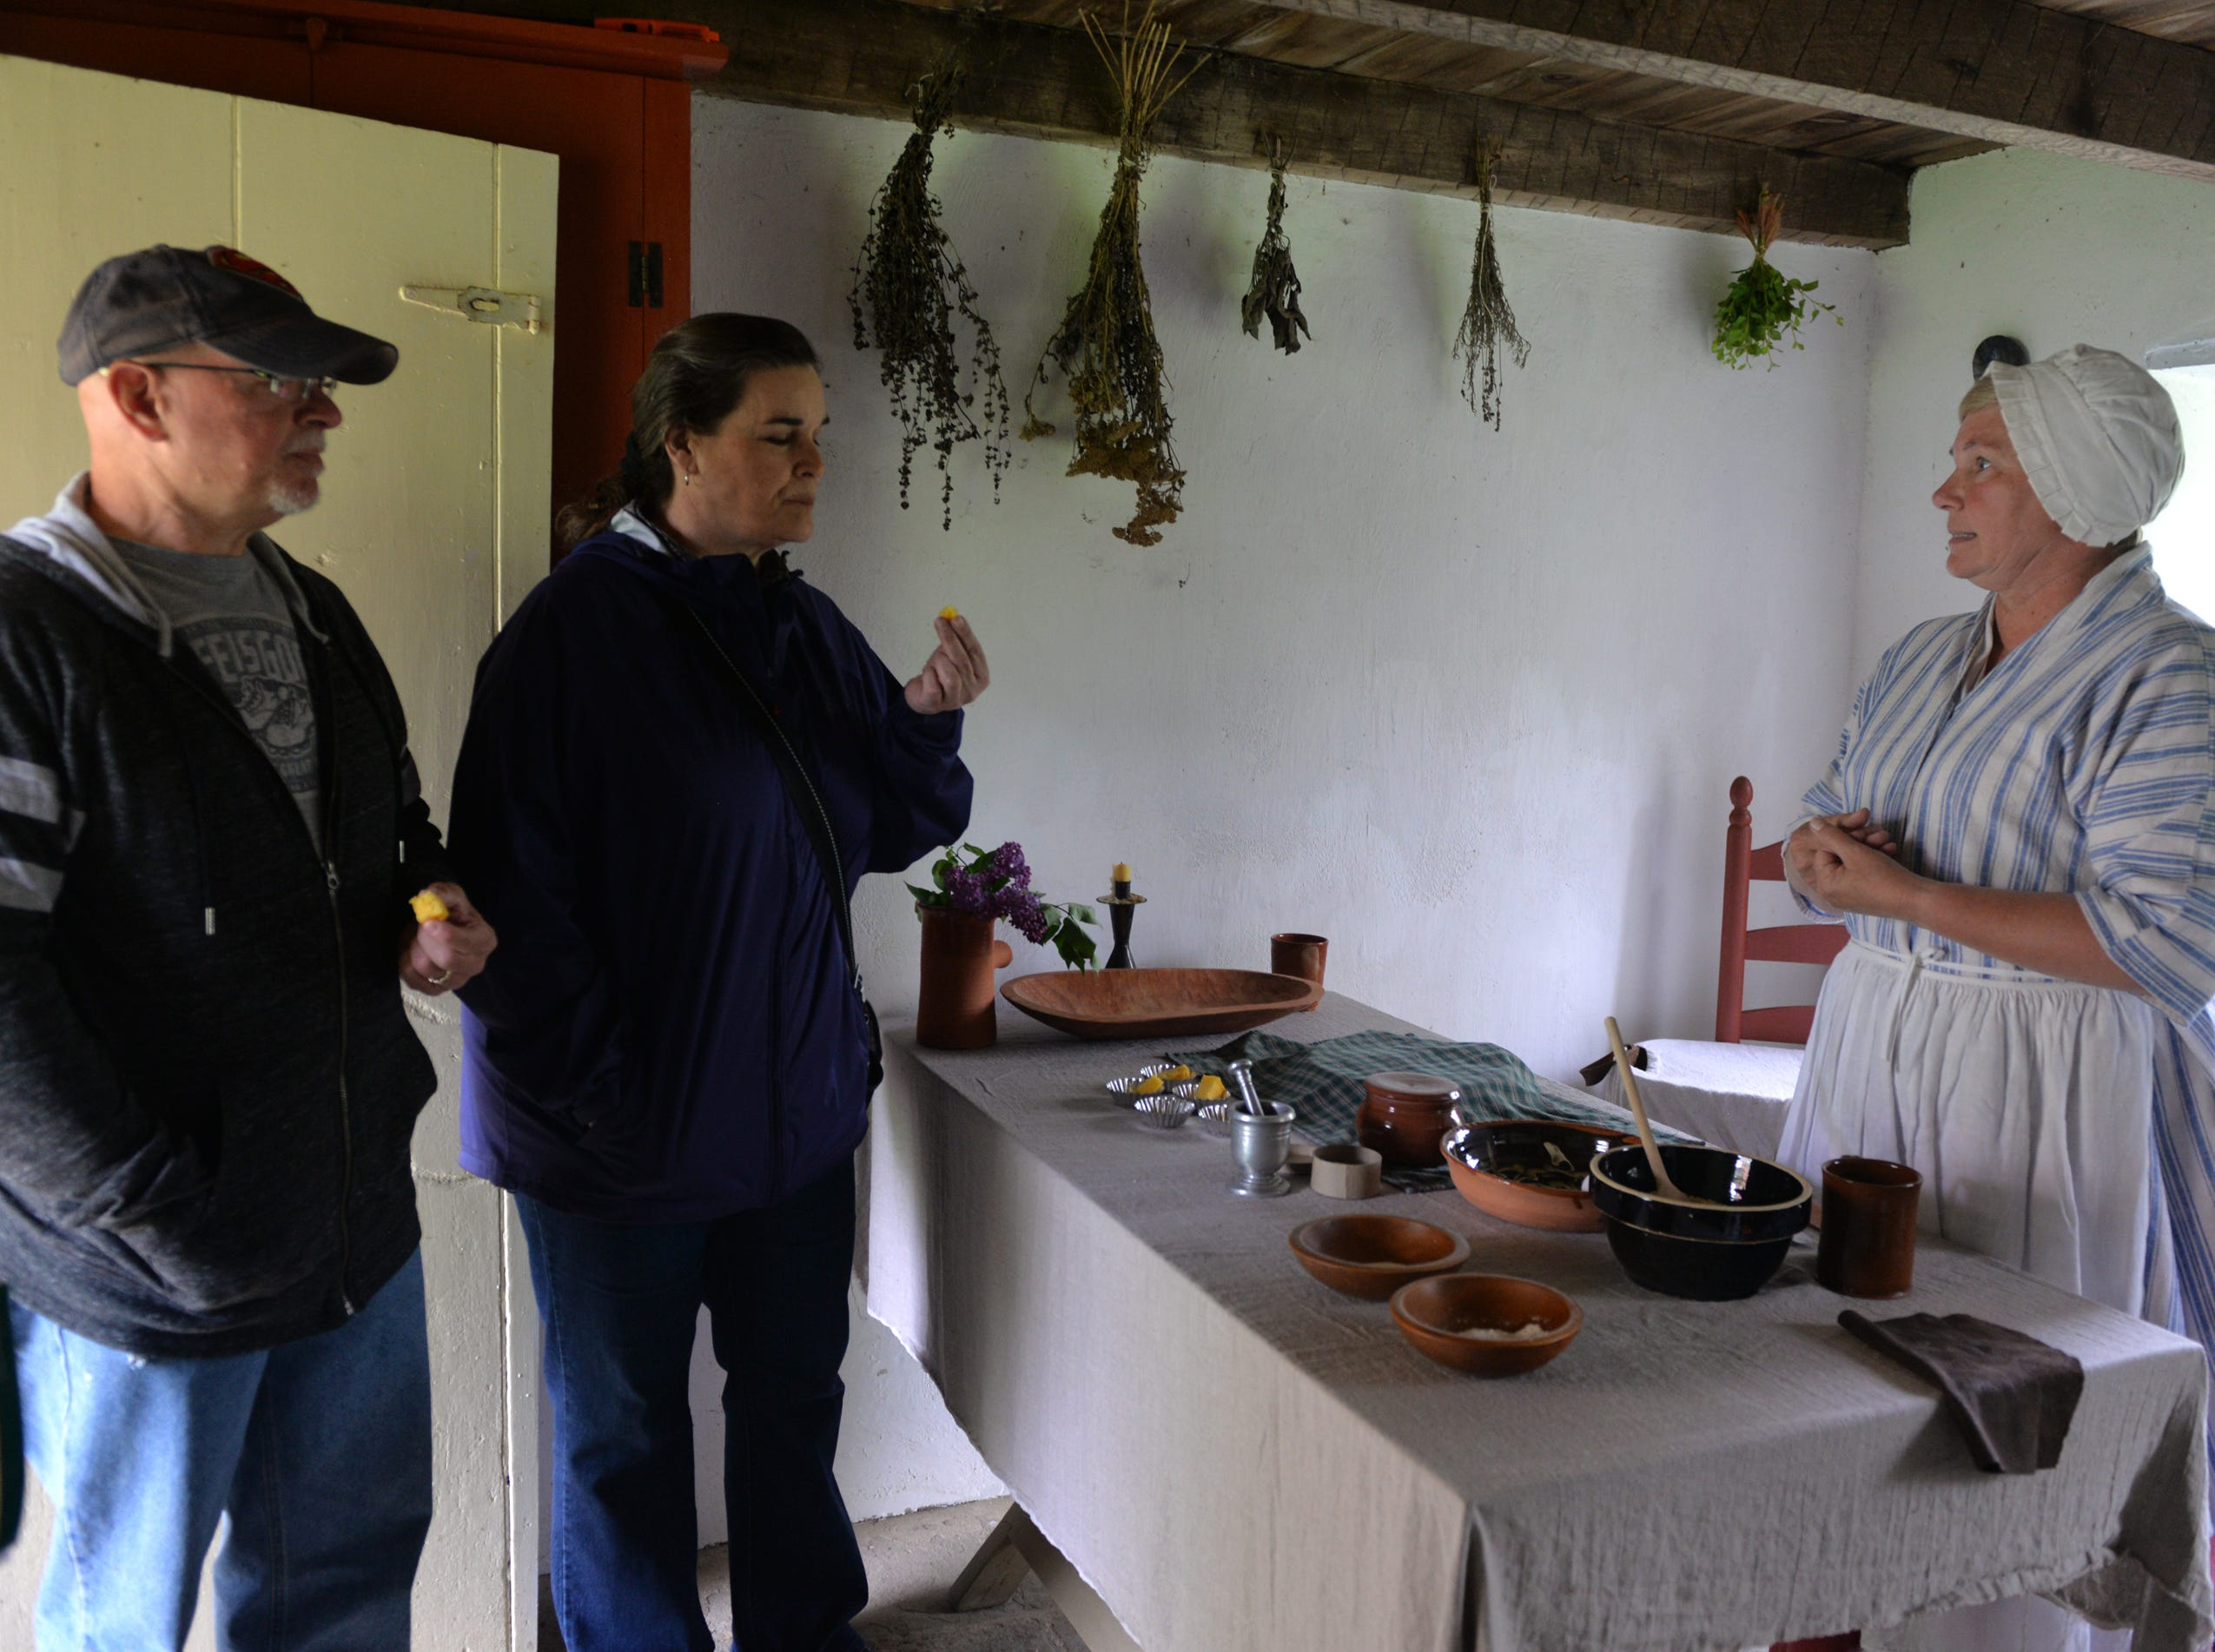 Kim Otto prepares cornbread in the springhouse during Making Sense of History, a special living history program that focused on the senses, held at The Conrad Weiser Homestead at Womelsdorf, Pa on Sunday, April 28, 2019.